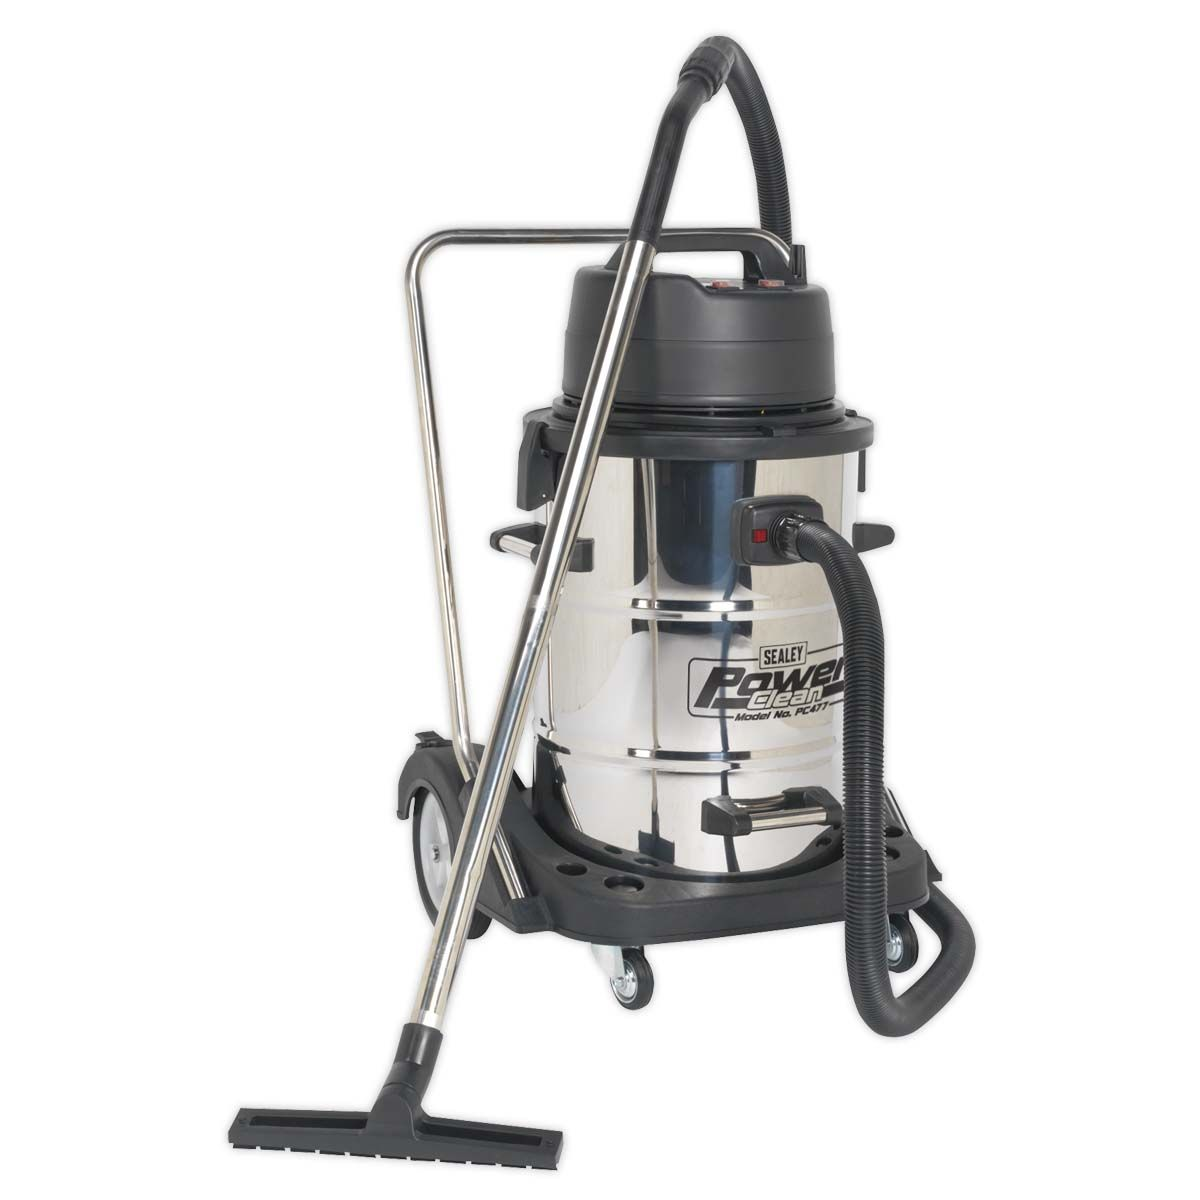 Sealey Vacuum Cleaner Industrial Wet & Dry 77L Stainless Steel Drum with Swivel